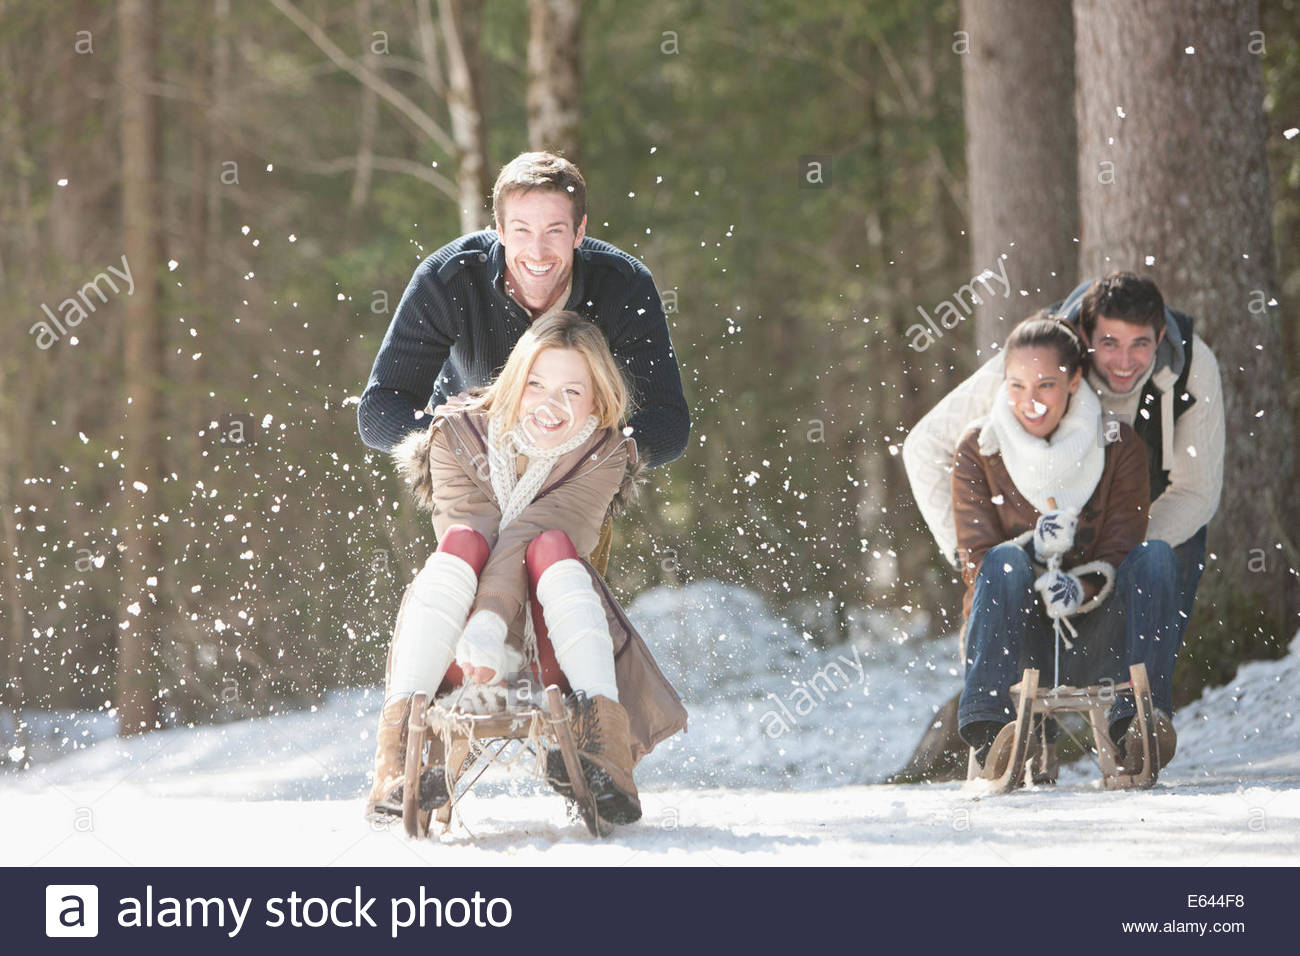 Men pushing women on sleds in snowy woods - Stock Image